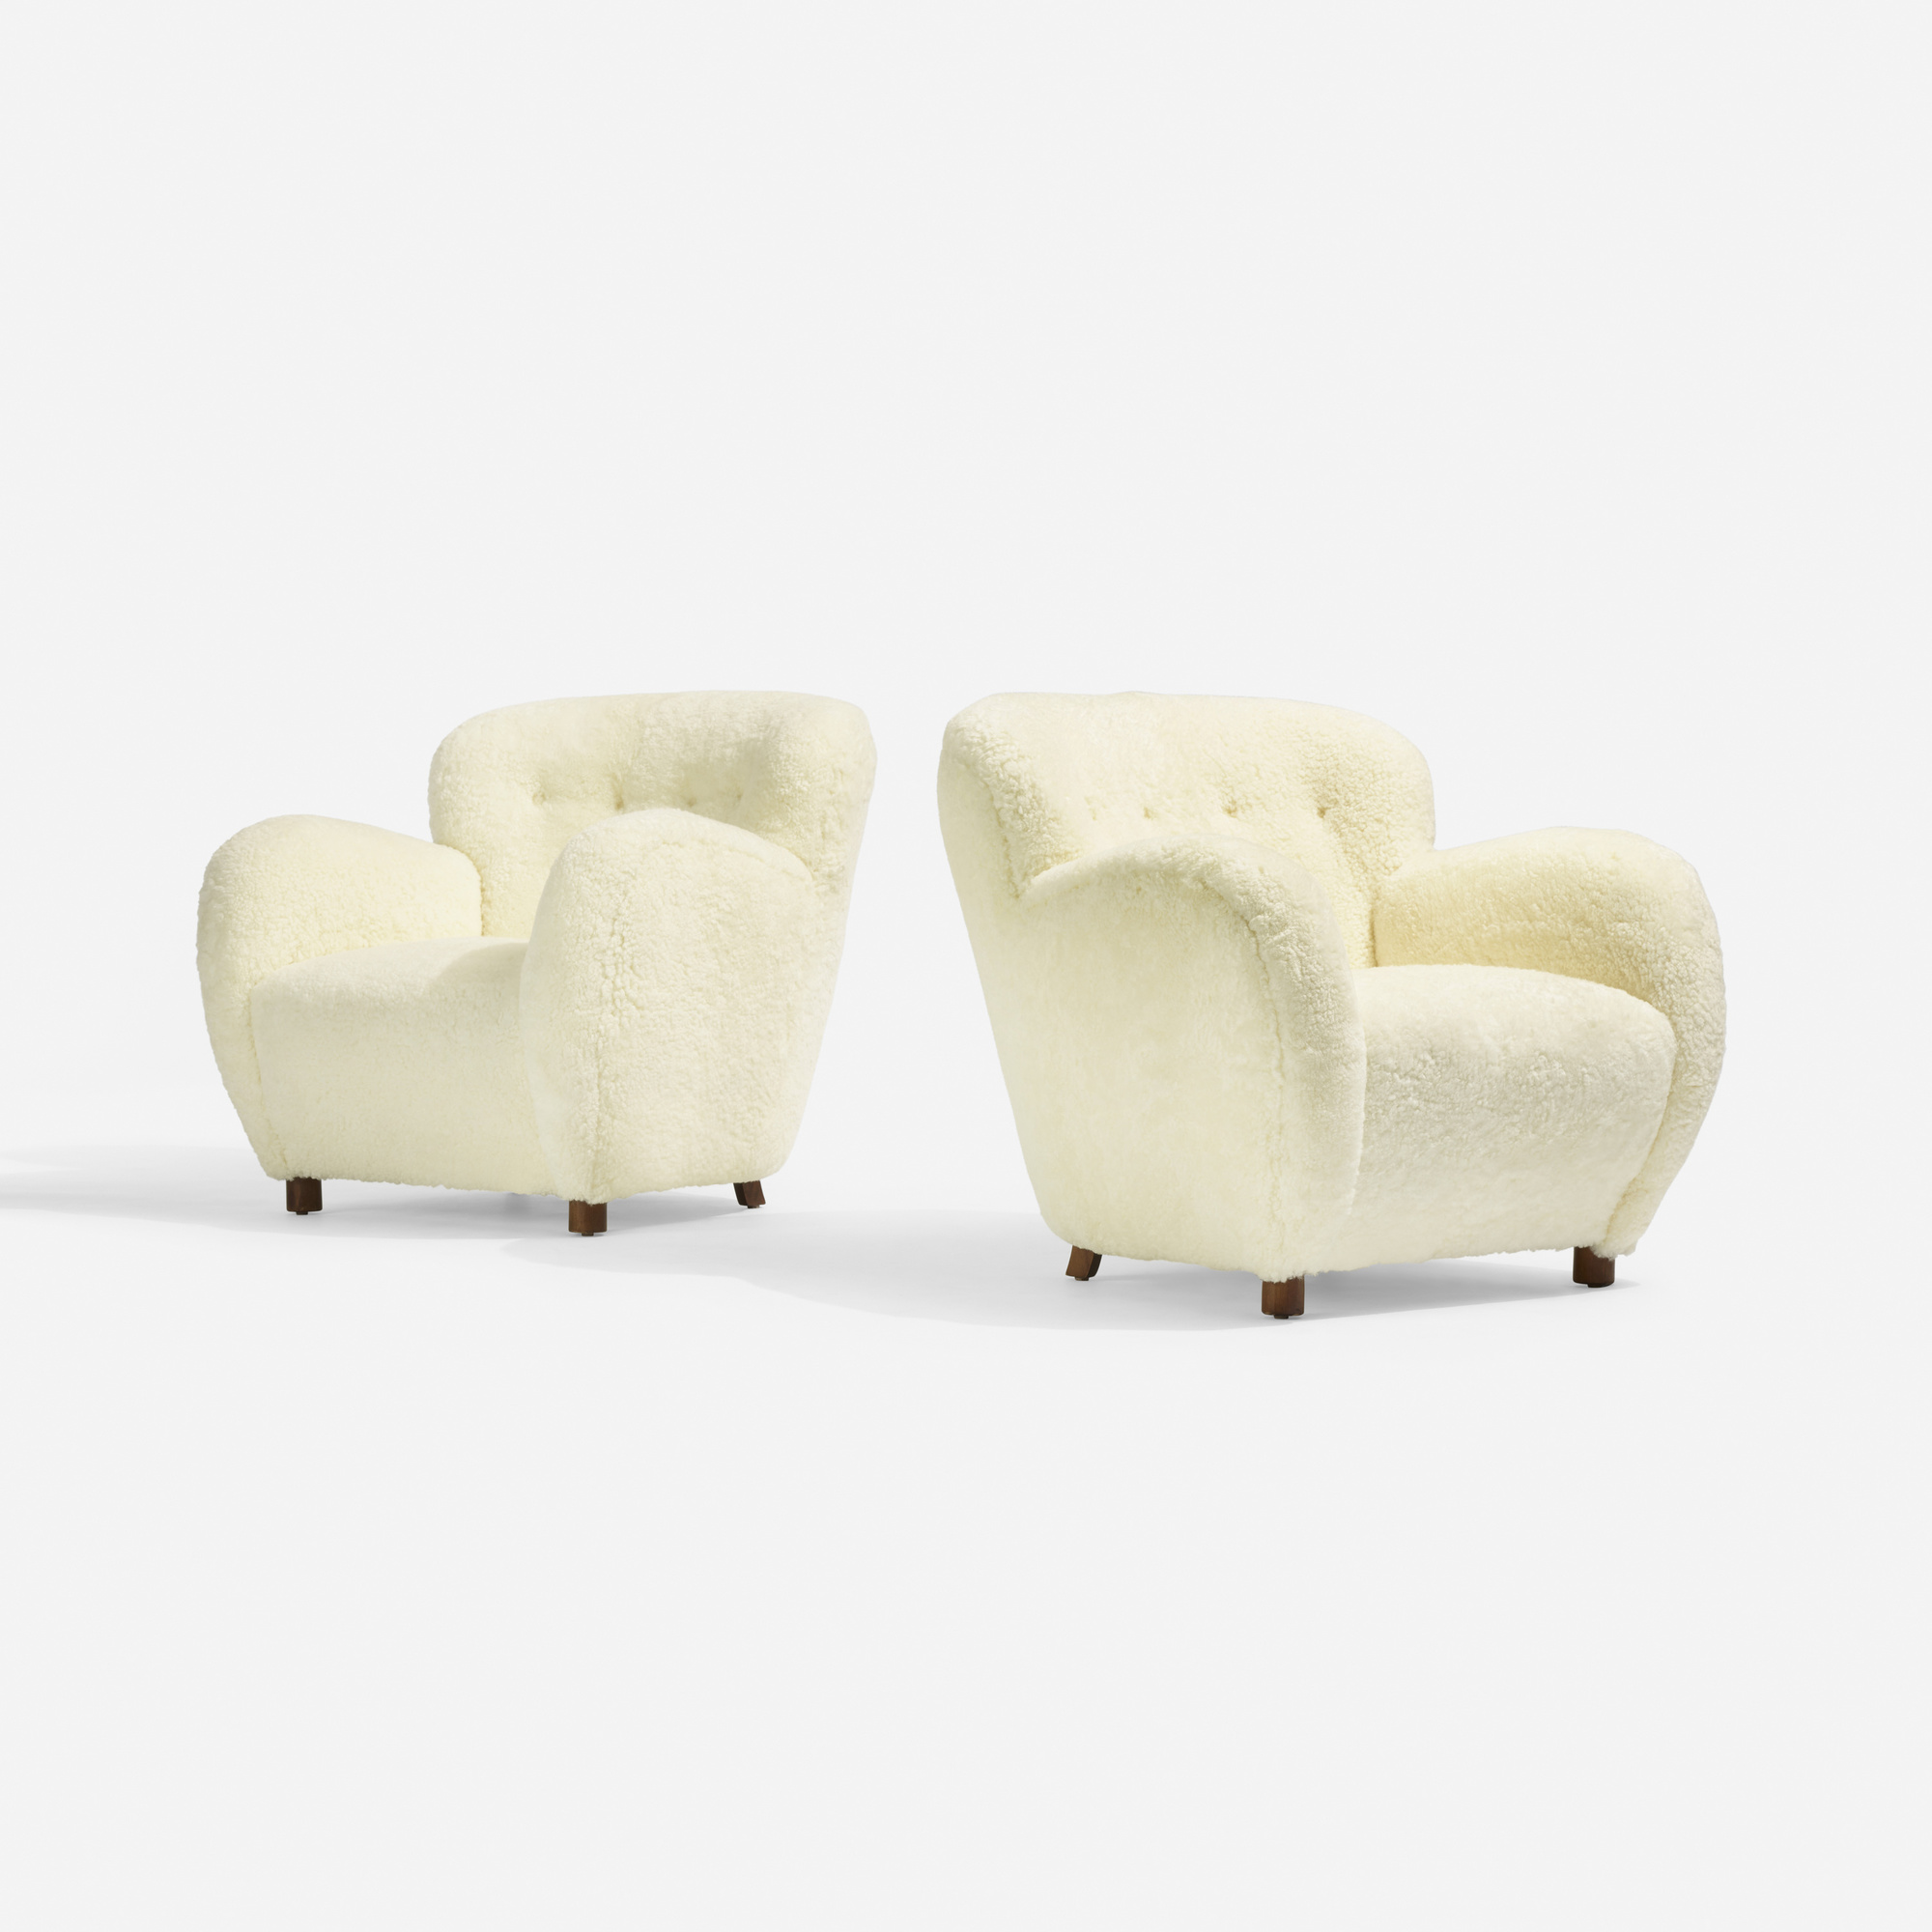 182: Flemming Lassen, attribution / lounge chairs, pair (1 of 3)